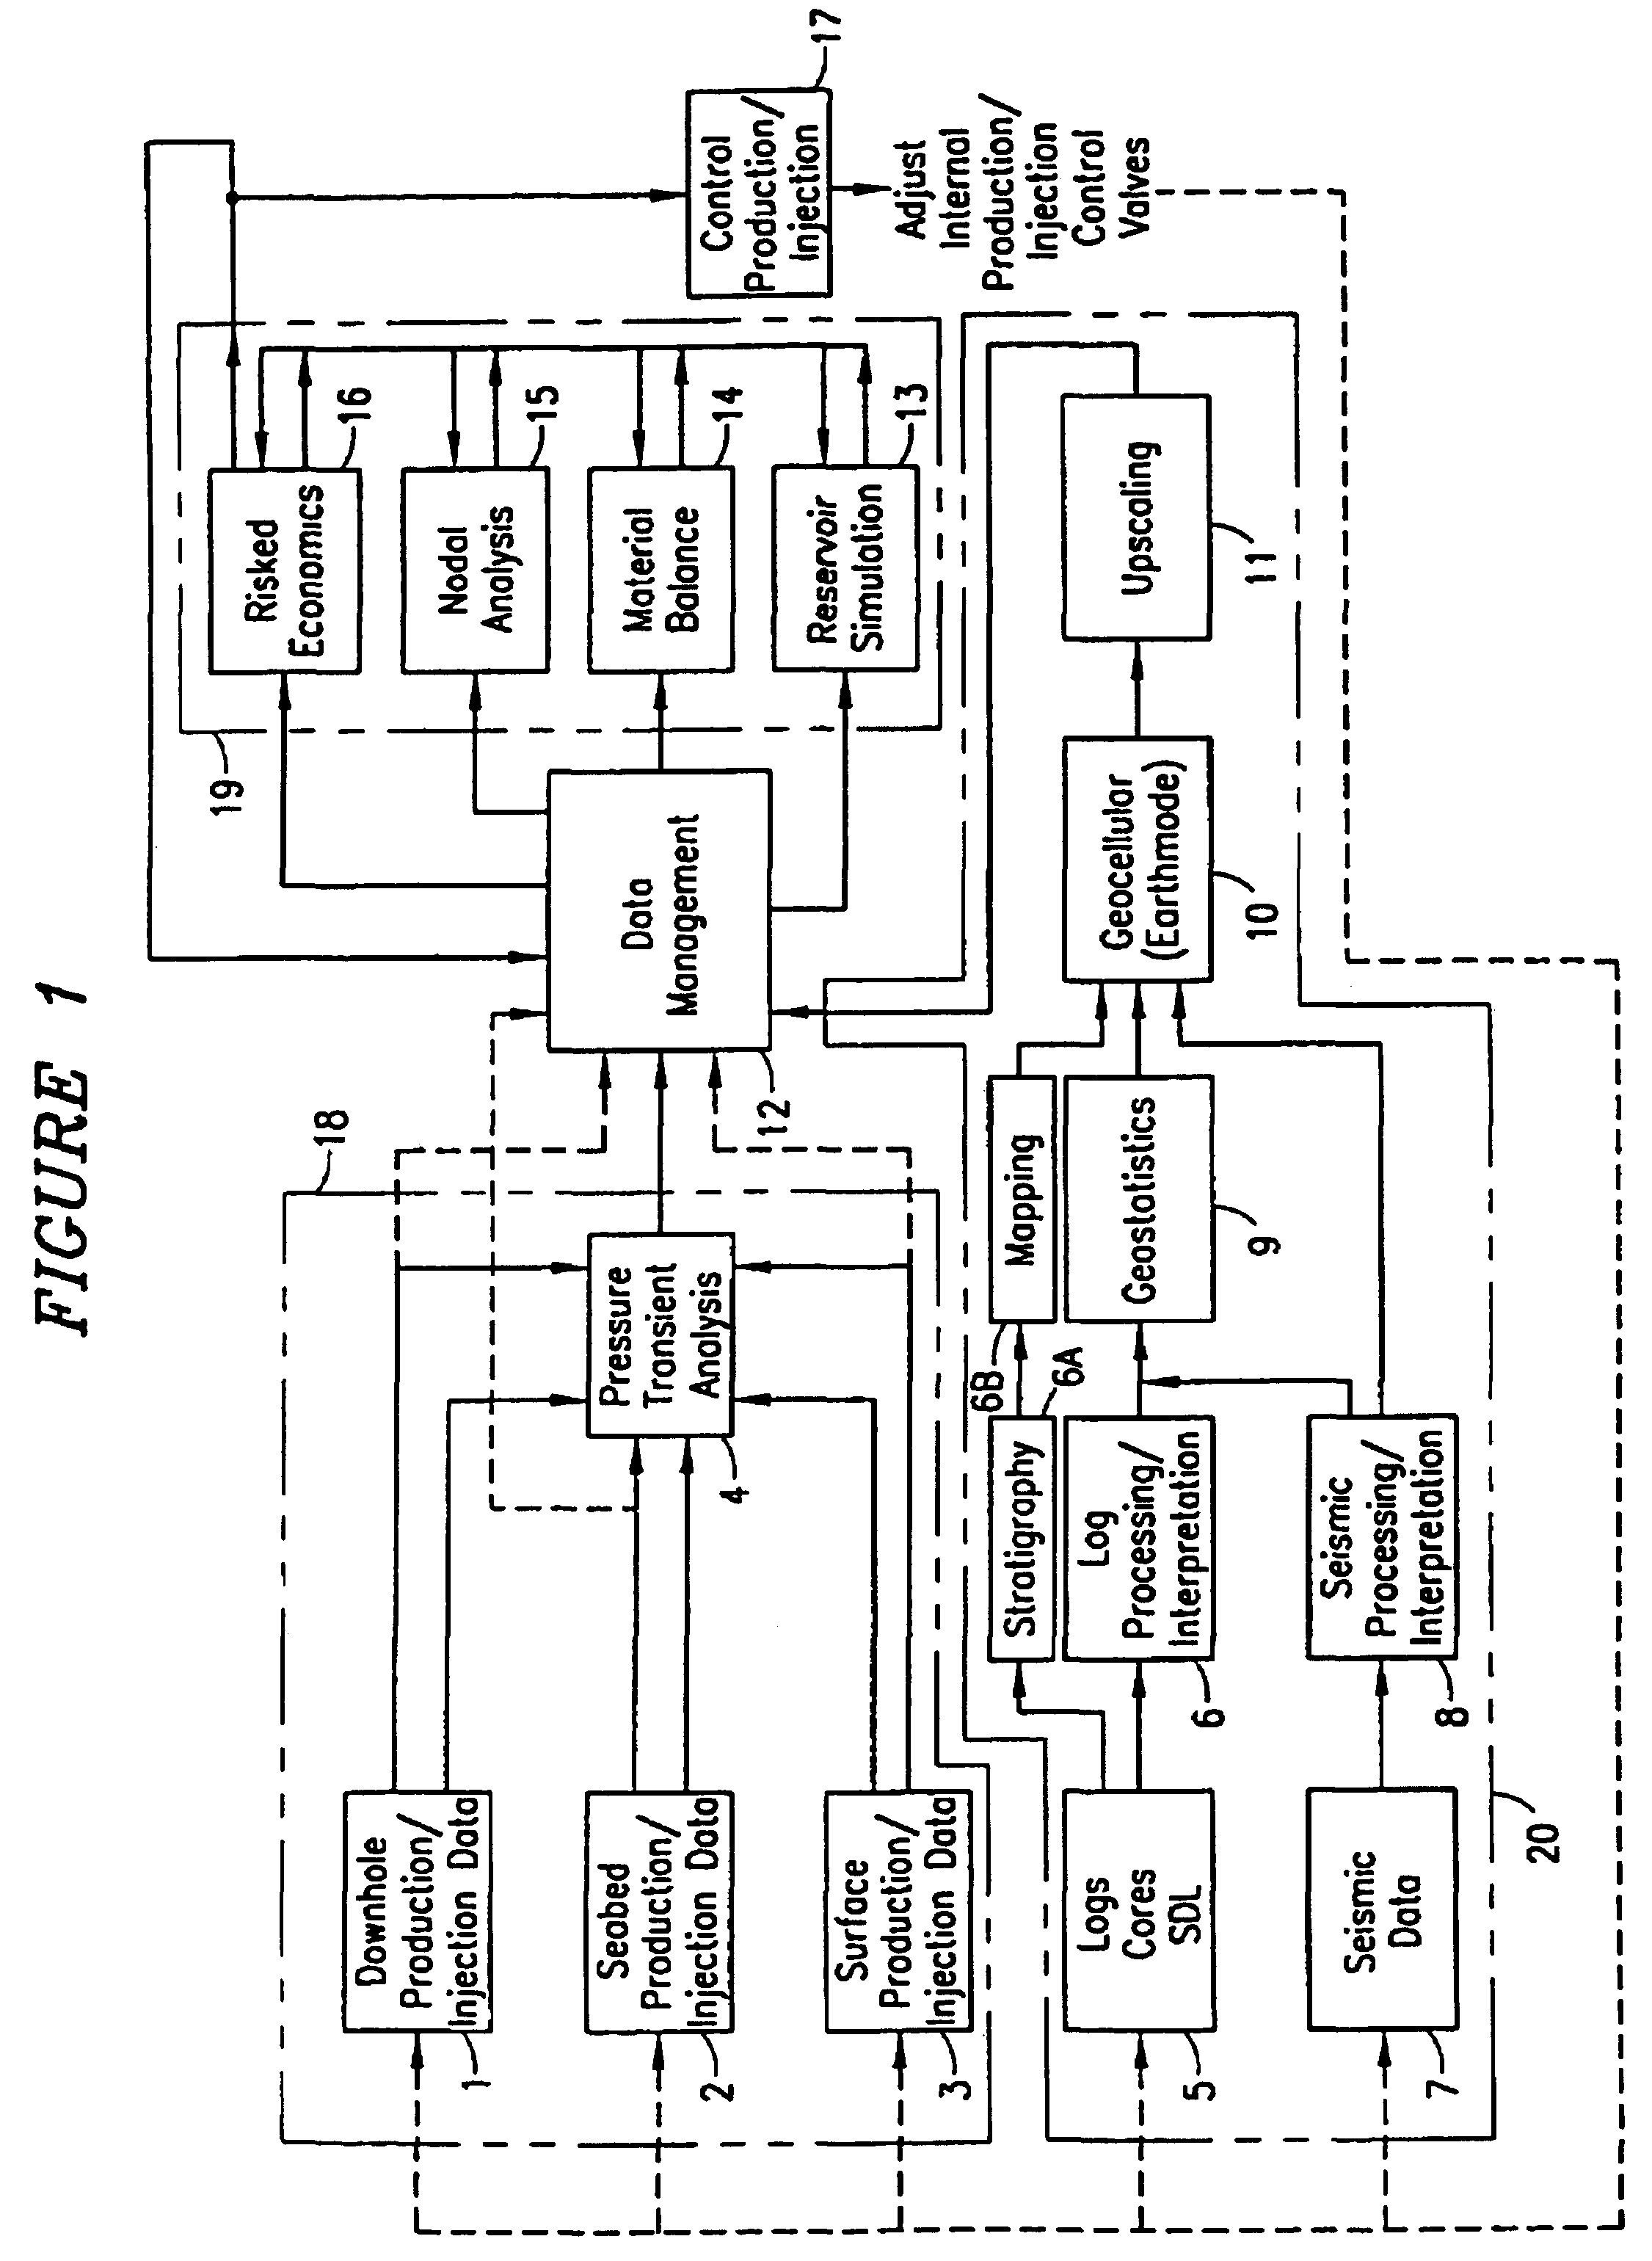 Patent usre42245 system and method for real time reservoir patent drawing ccuart Images